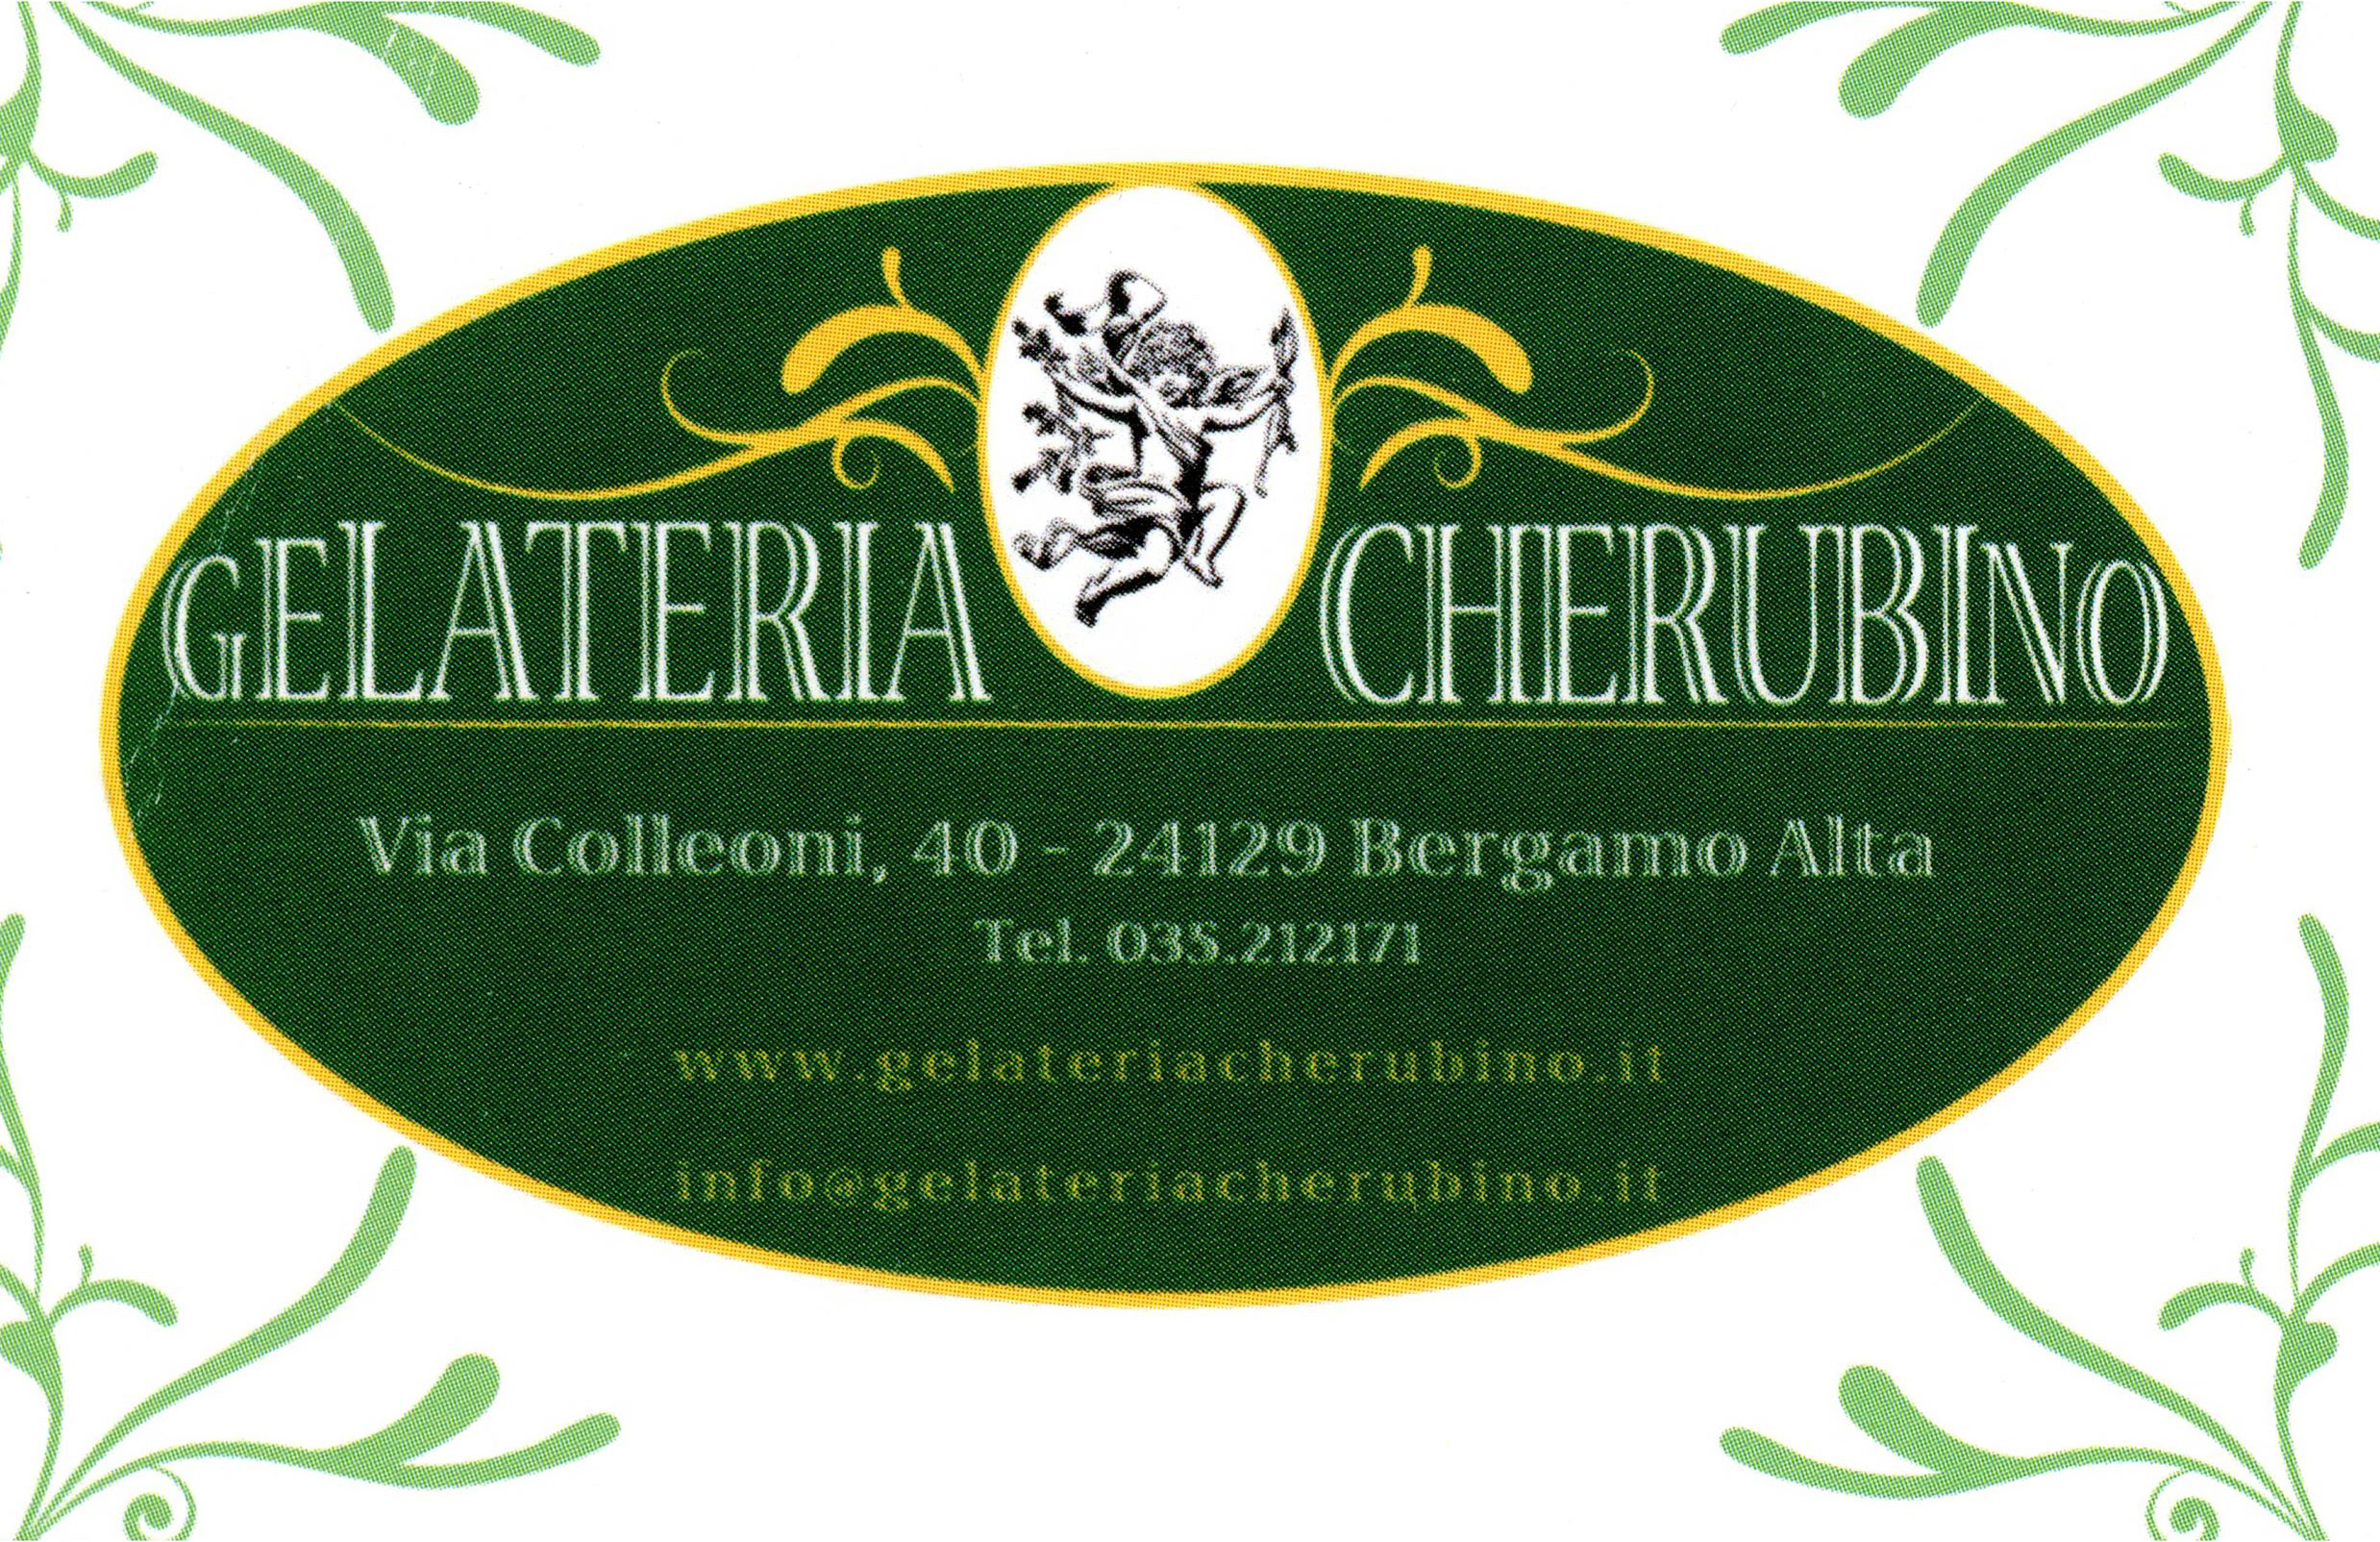 Flower Food_Bar_Gelateria-Cherubino